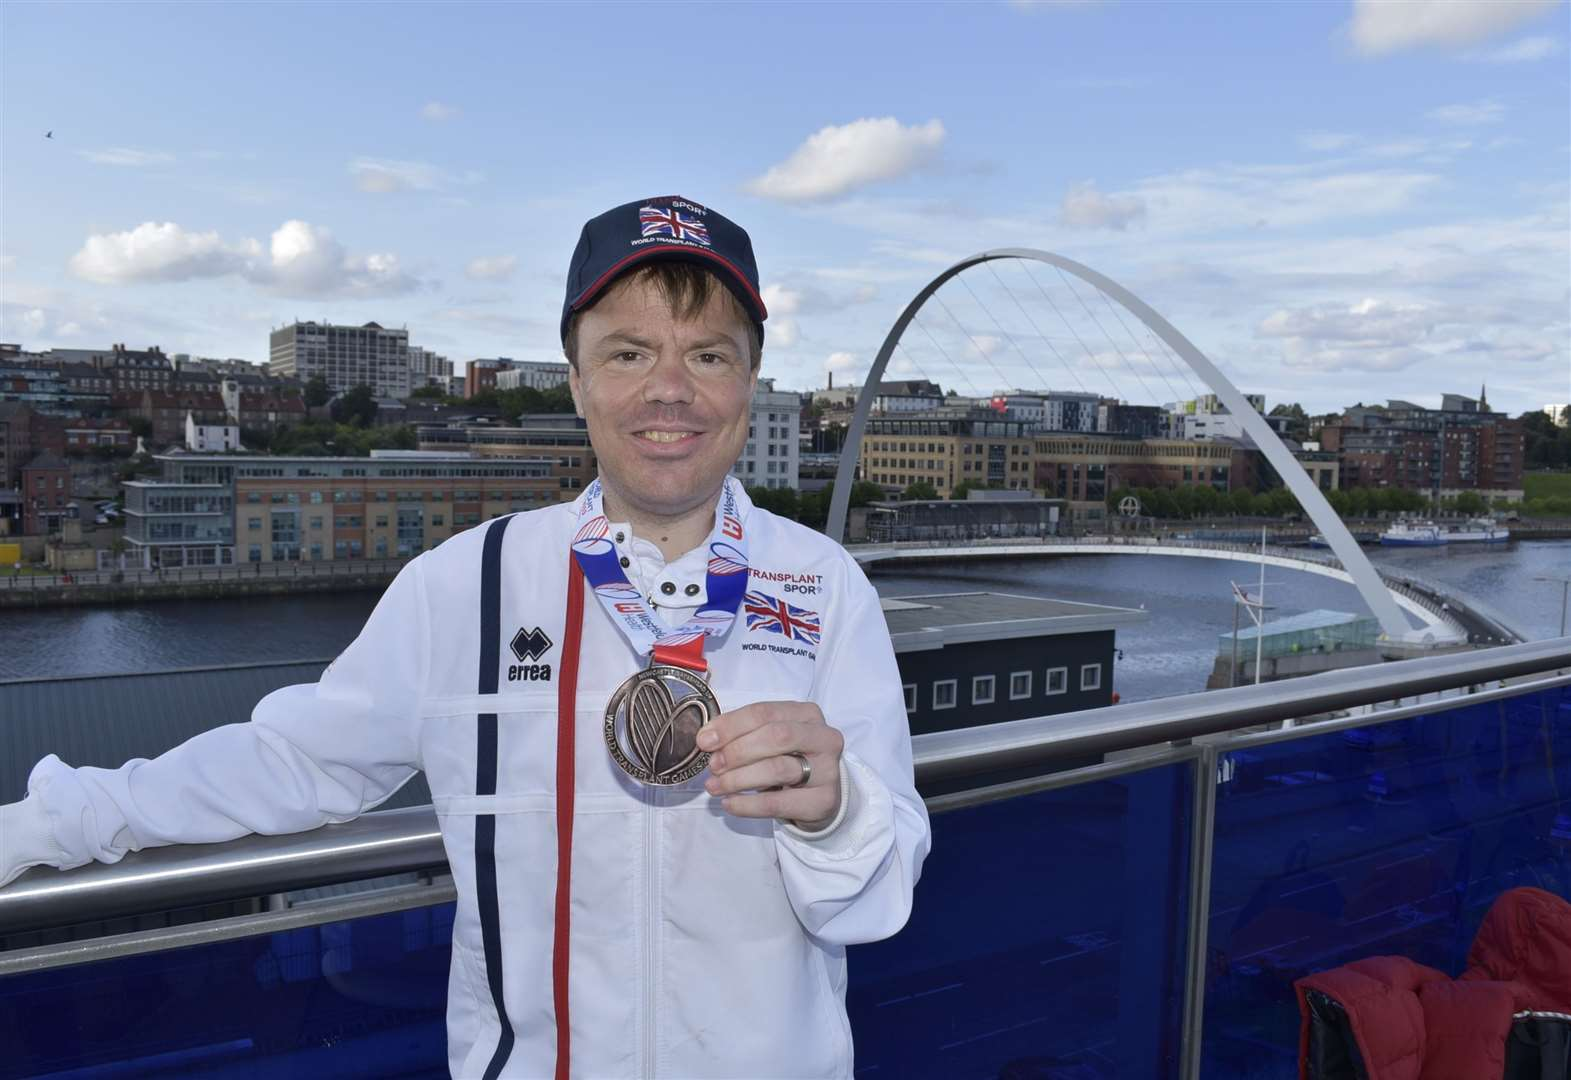 Man wins medal in transplant games just six months after receiving his mum's kidney